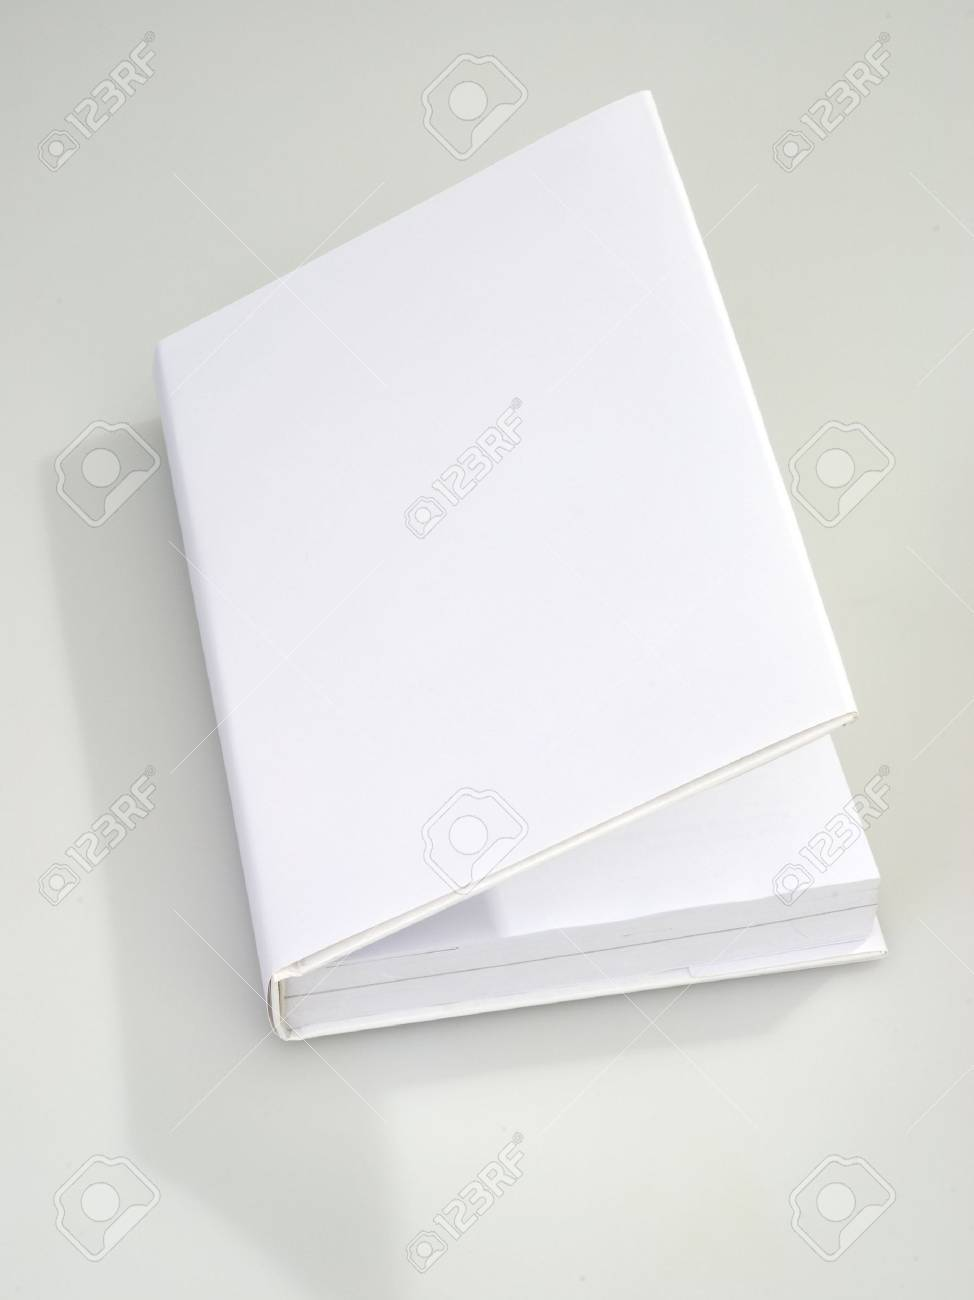 Blank book cover white Stock Photo - 6265435